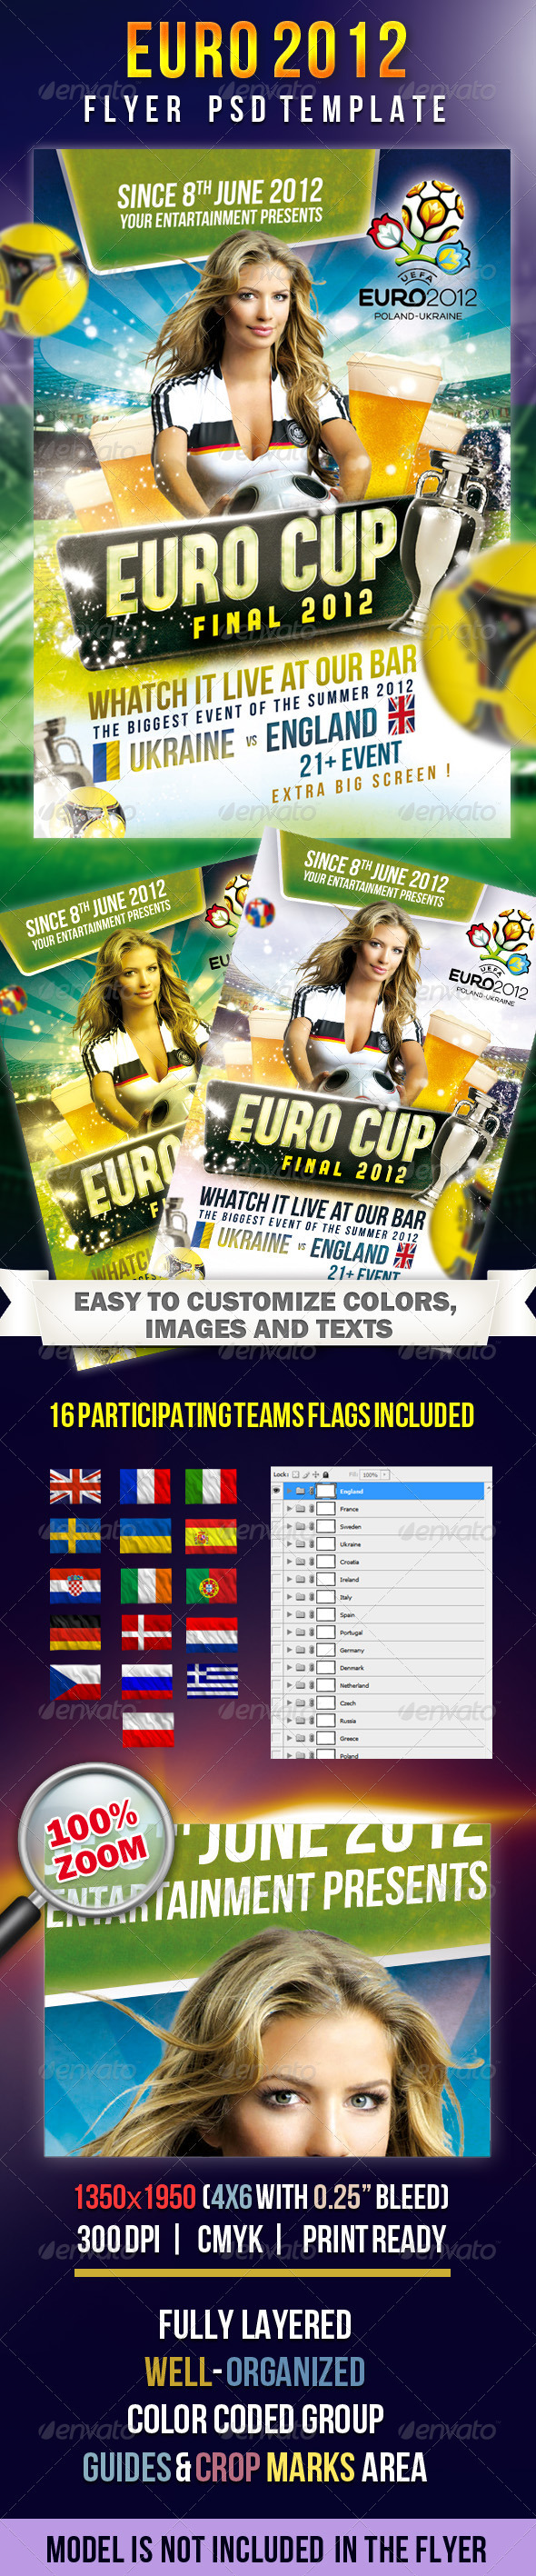 EURO CUP 2012 Flyer PSD Template